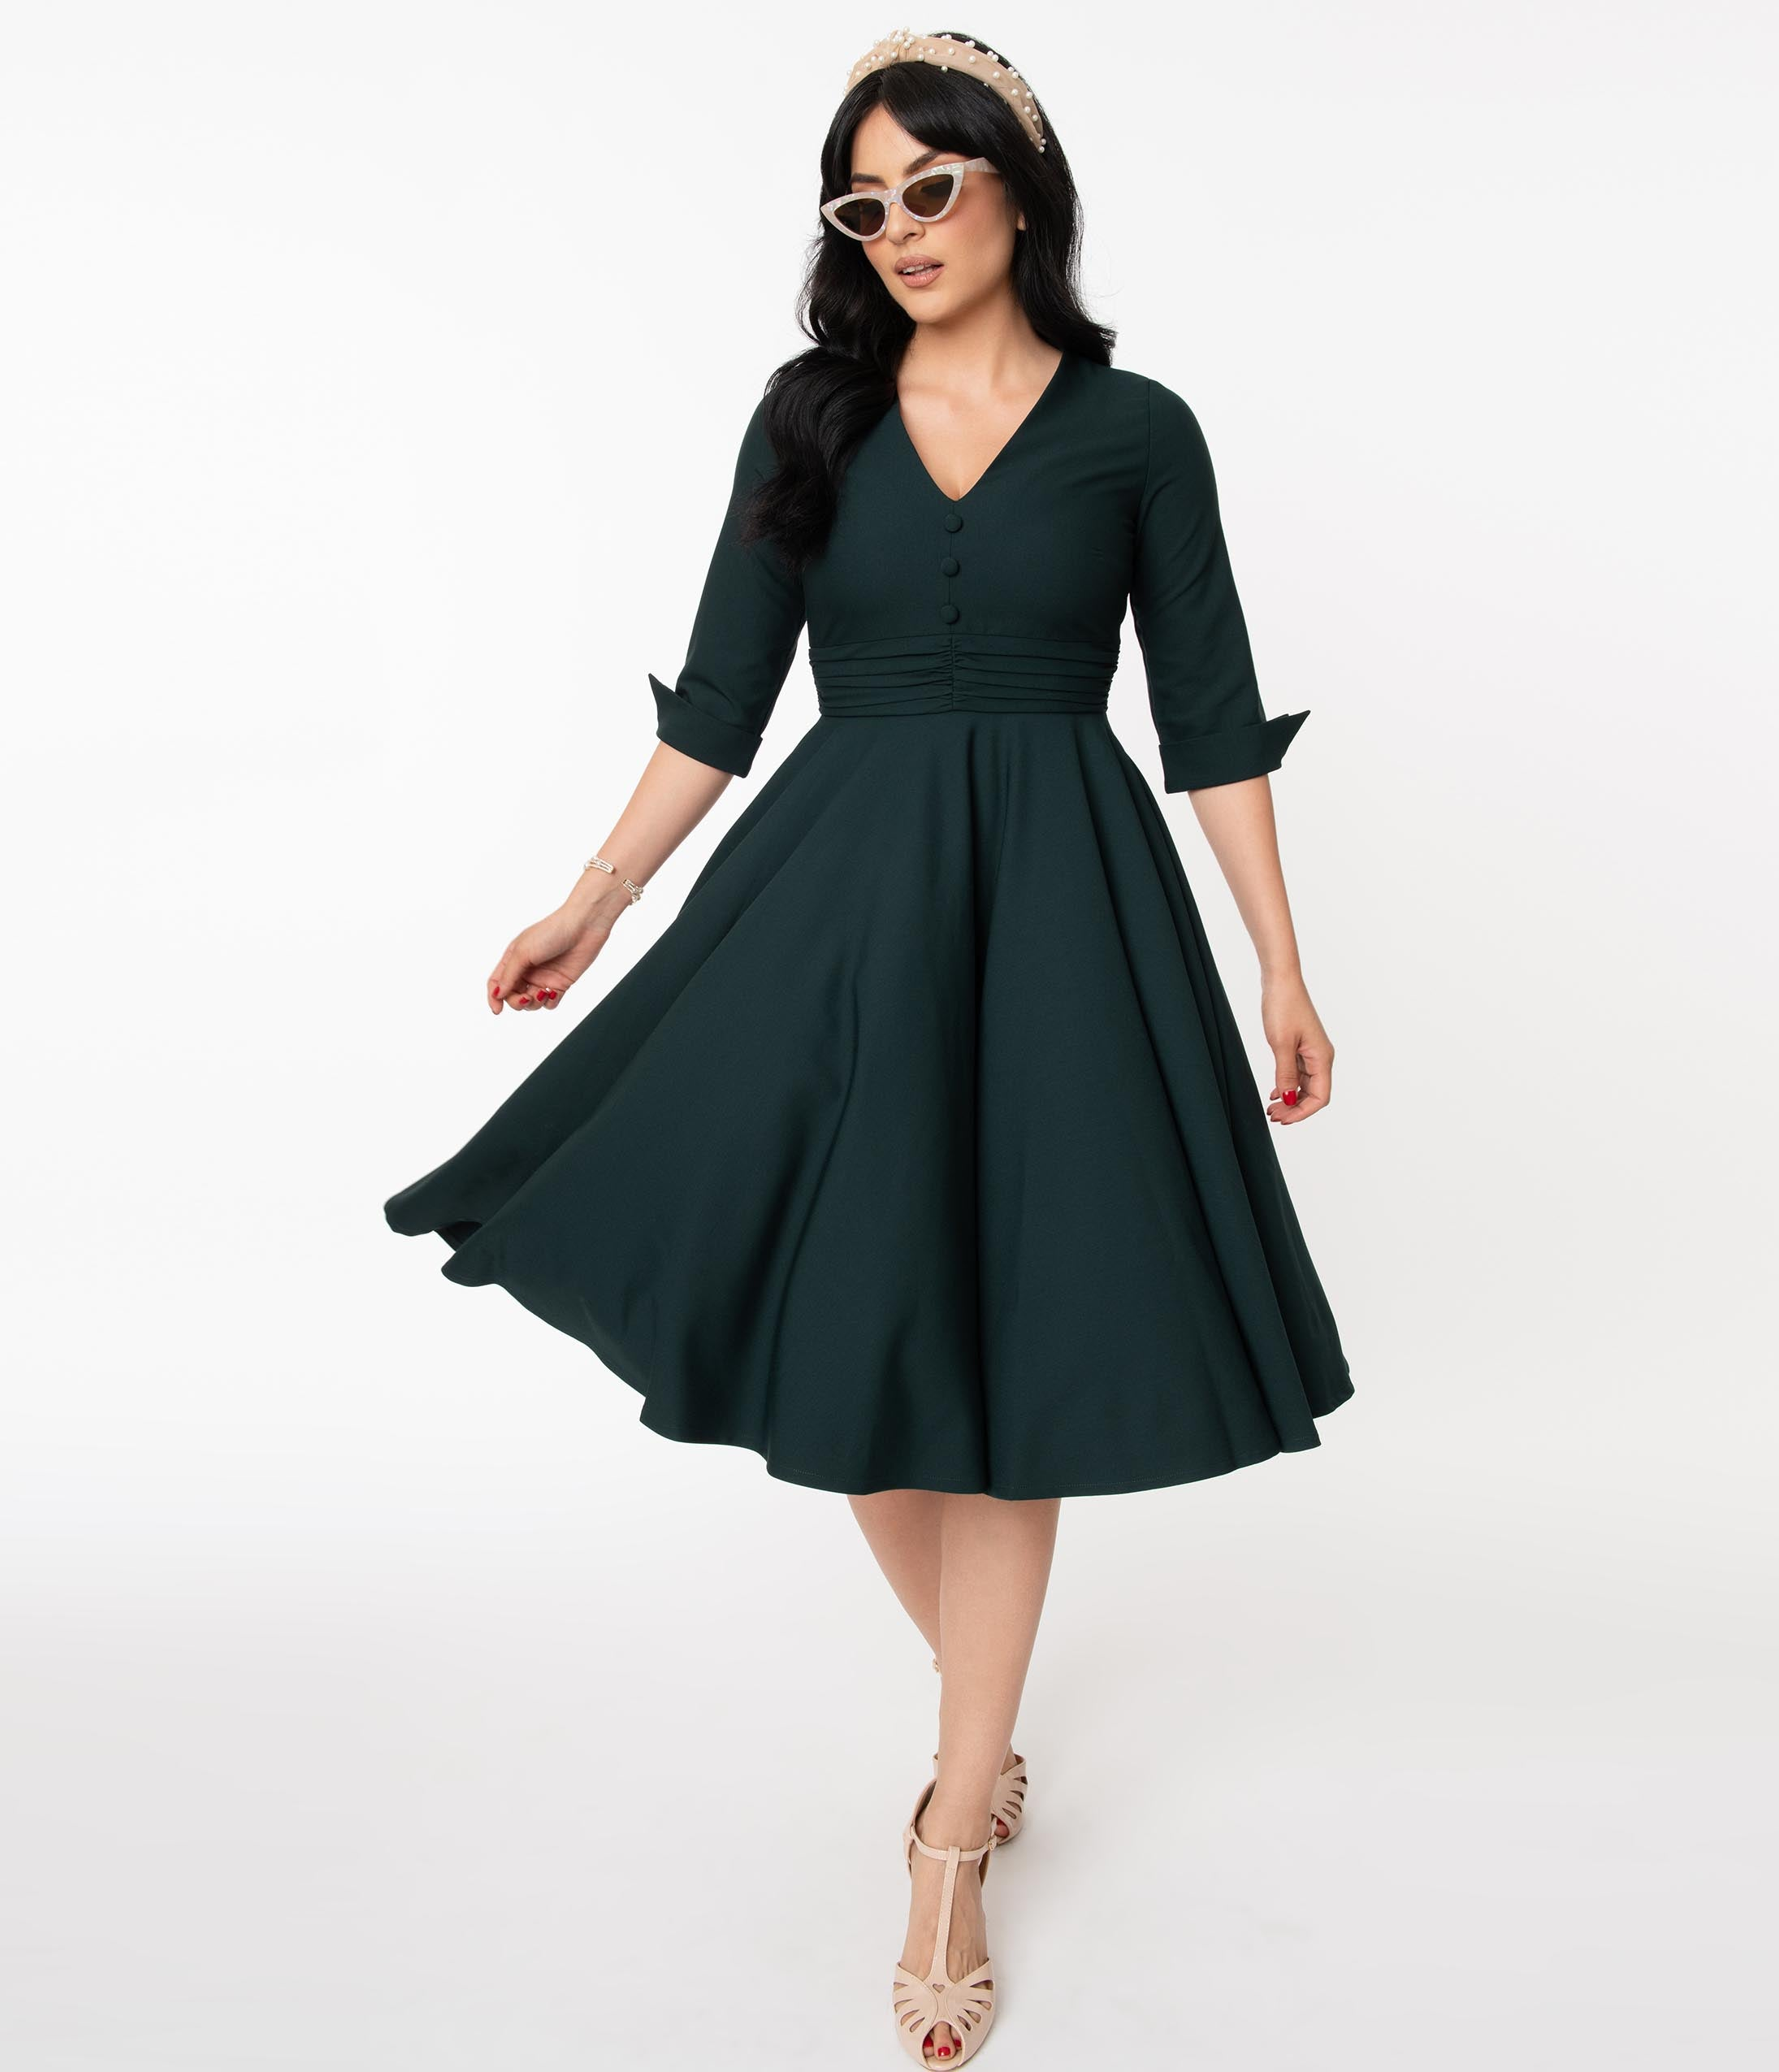 1950s Dresses, 50s Dresses | 1950s Style Dresses Vintage Diva 1950S Dark Emerald Judy Swing Dress $160.00 AT vintagedancer.com